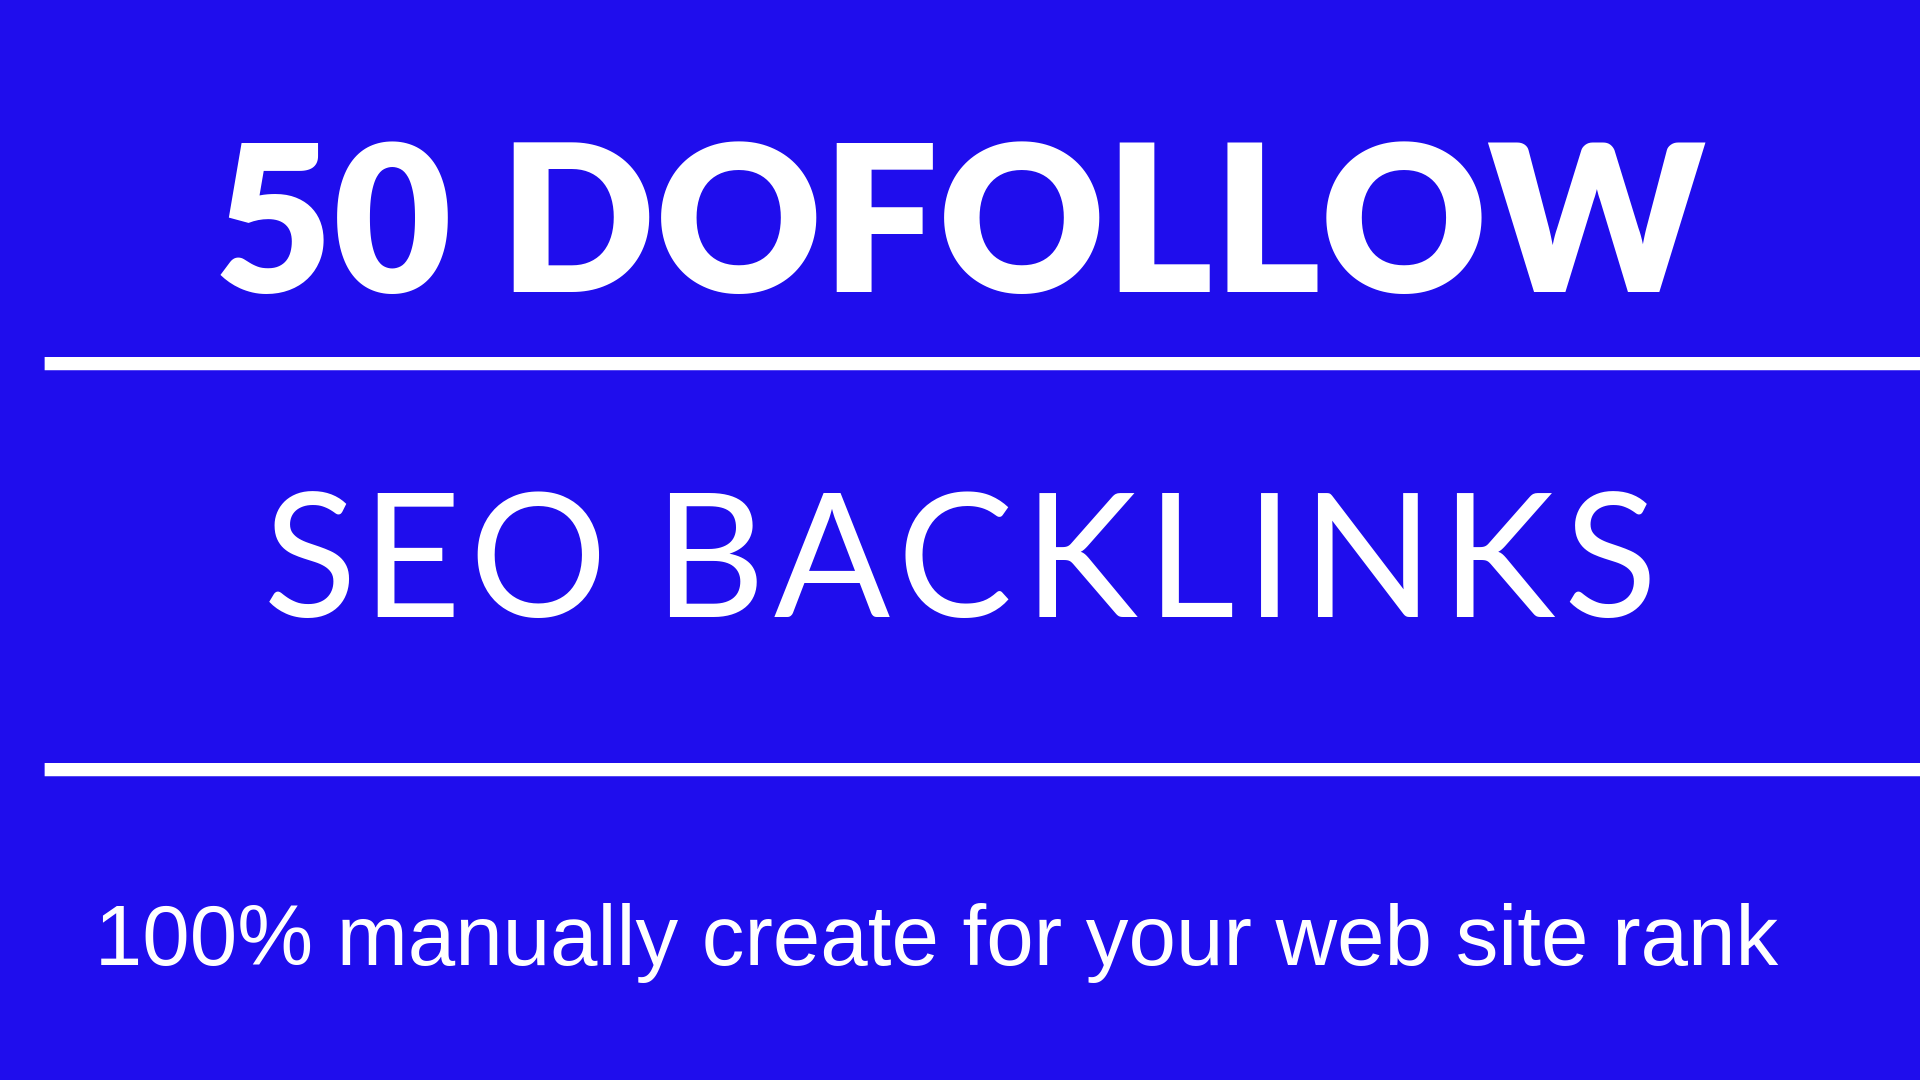 I  Do 50 High Quality Dofollow Backlinks Manually